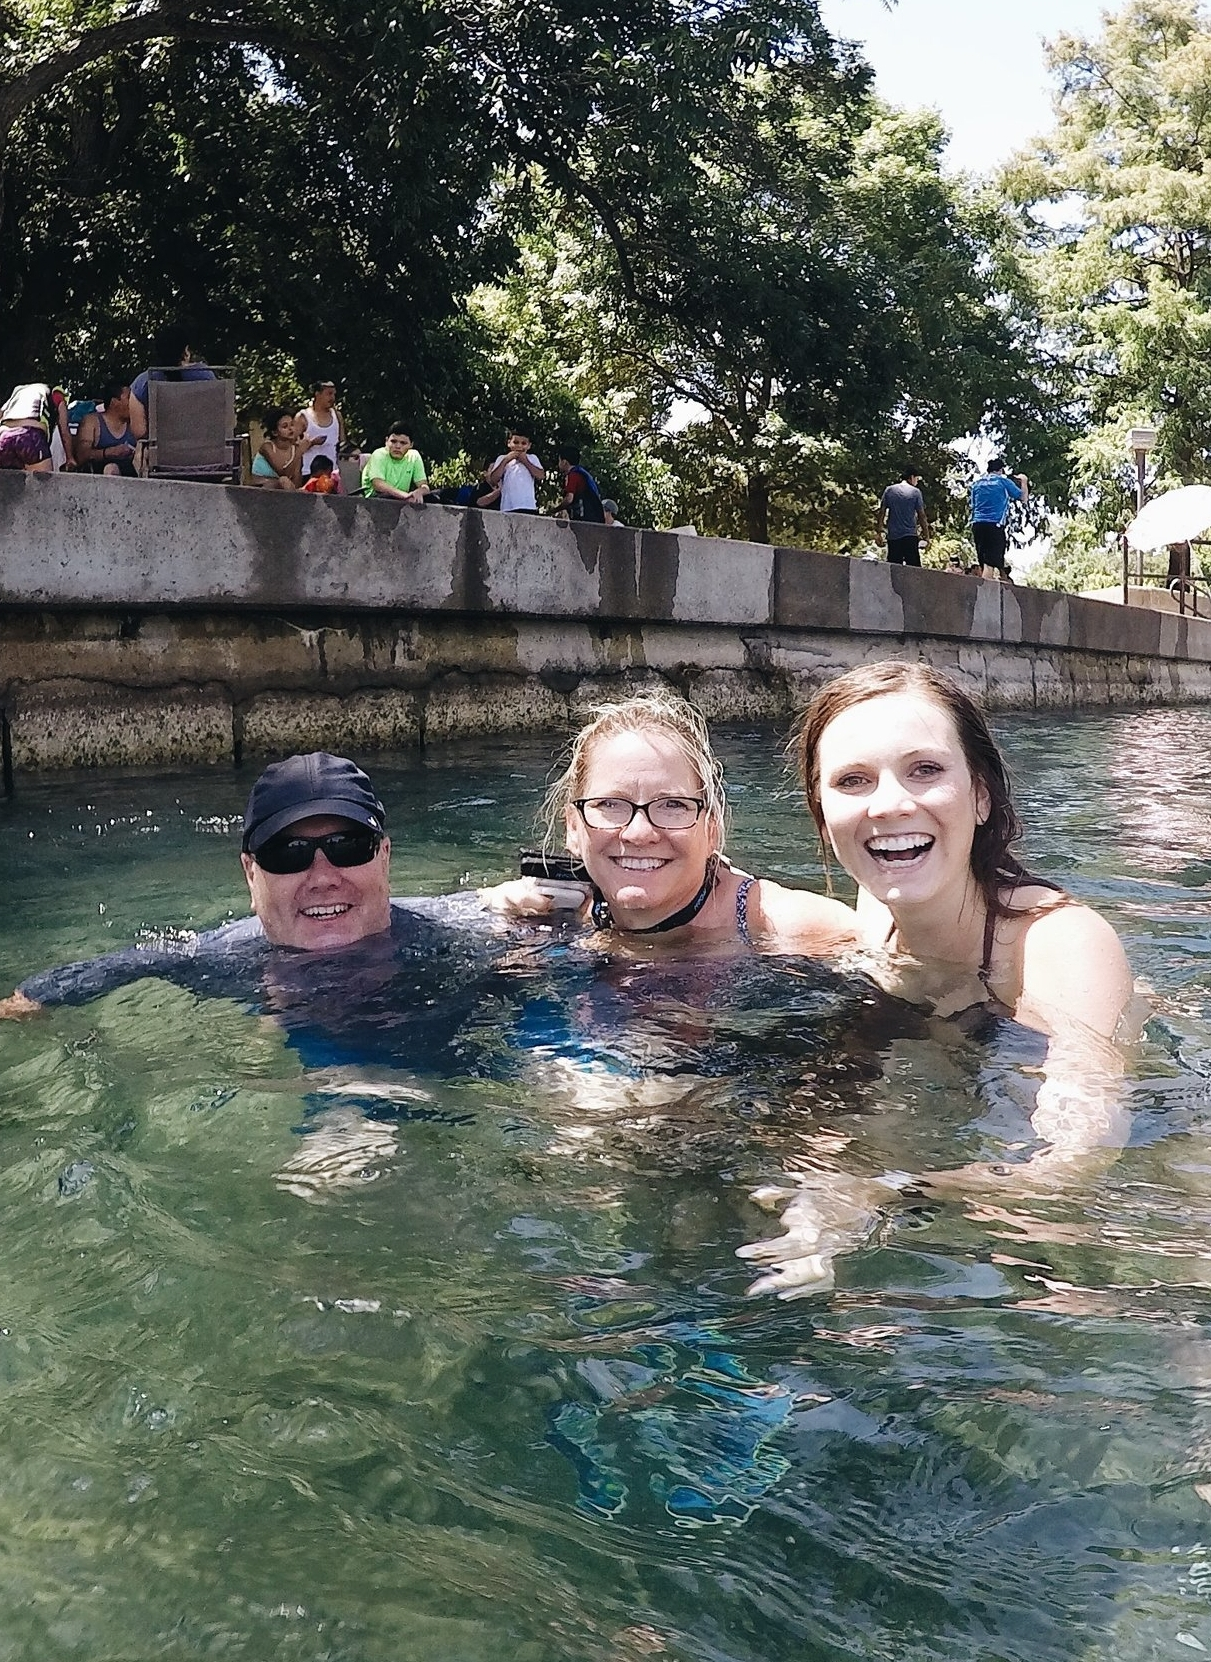 Floating the river in San Marcos.